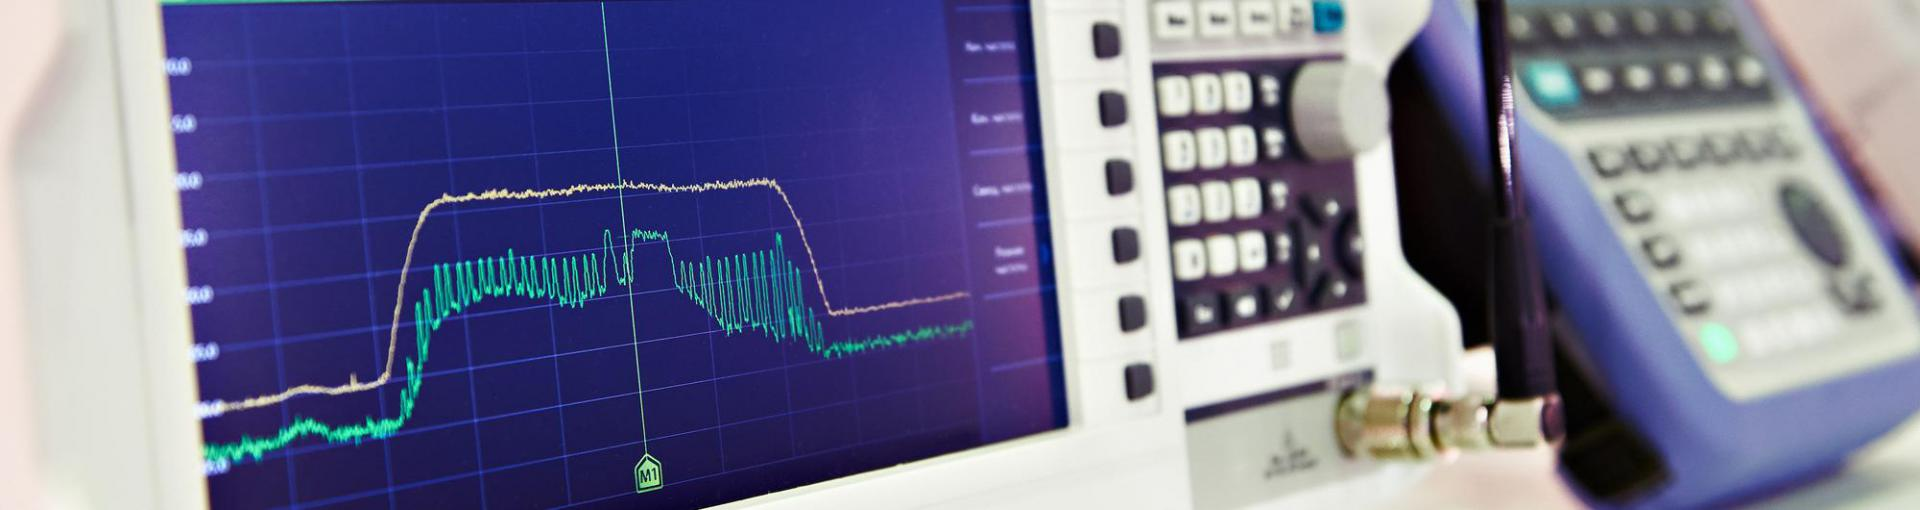 Spectrum analyzer 2